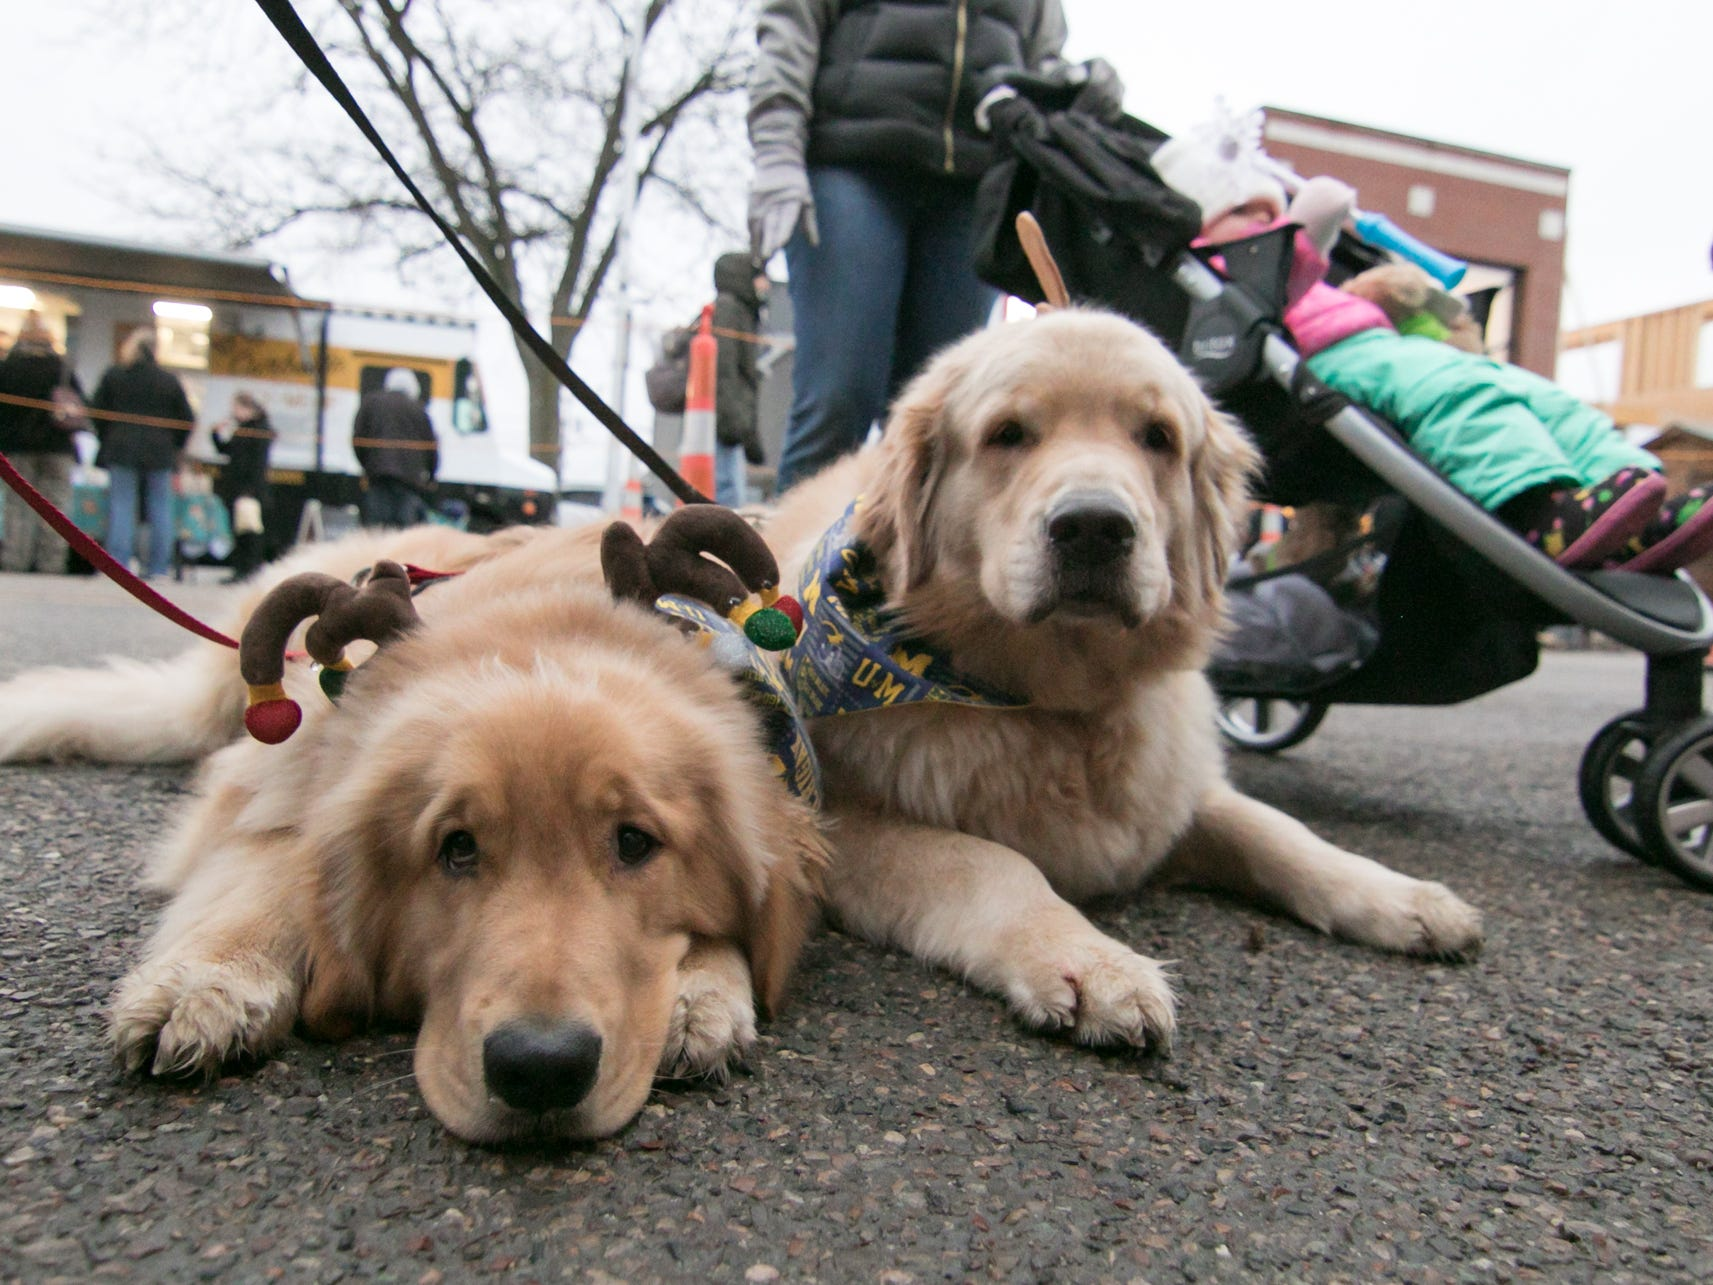 Chance, left, and Duke, two golden retrievers, wear reindeer antlers and University of Michigan bandanas around their necks at Brighton's Holiday Glow Saturday, Nov. 17, 2018.